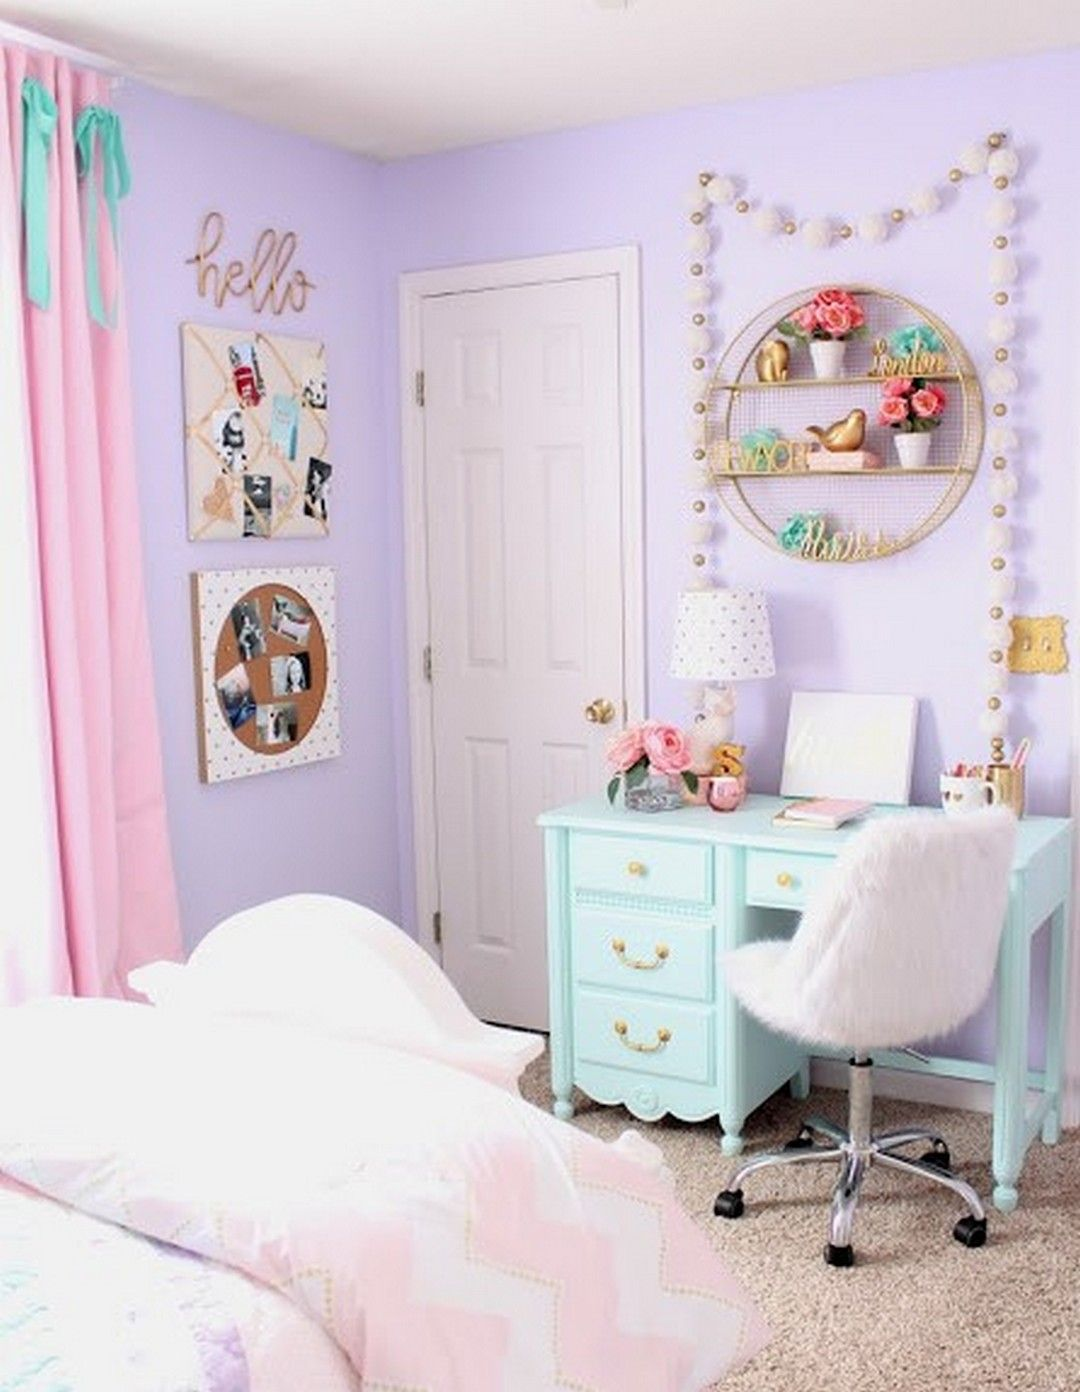 Fullsize Of Cute Room Decor